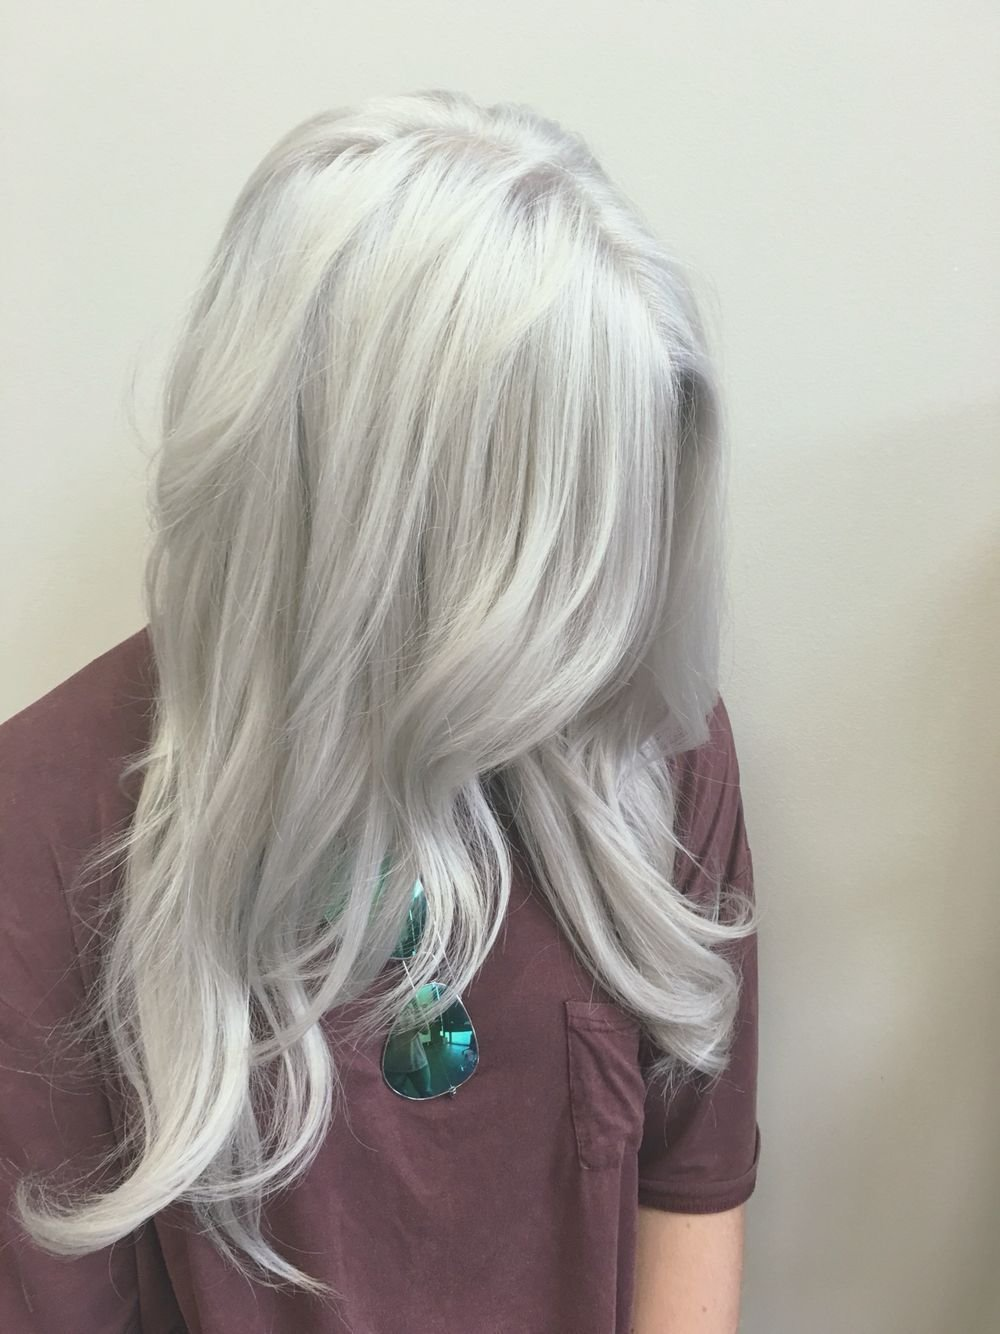 The Best Silver Hair White Hair Gray Hair Old Lady Hair Color ⇡Нaιr⇣ Hair Silver White Hair Blonde Hair Pictures